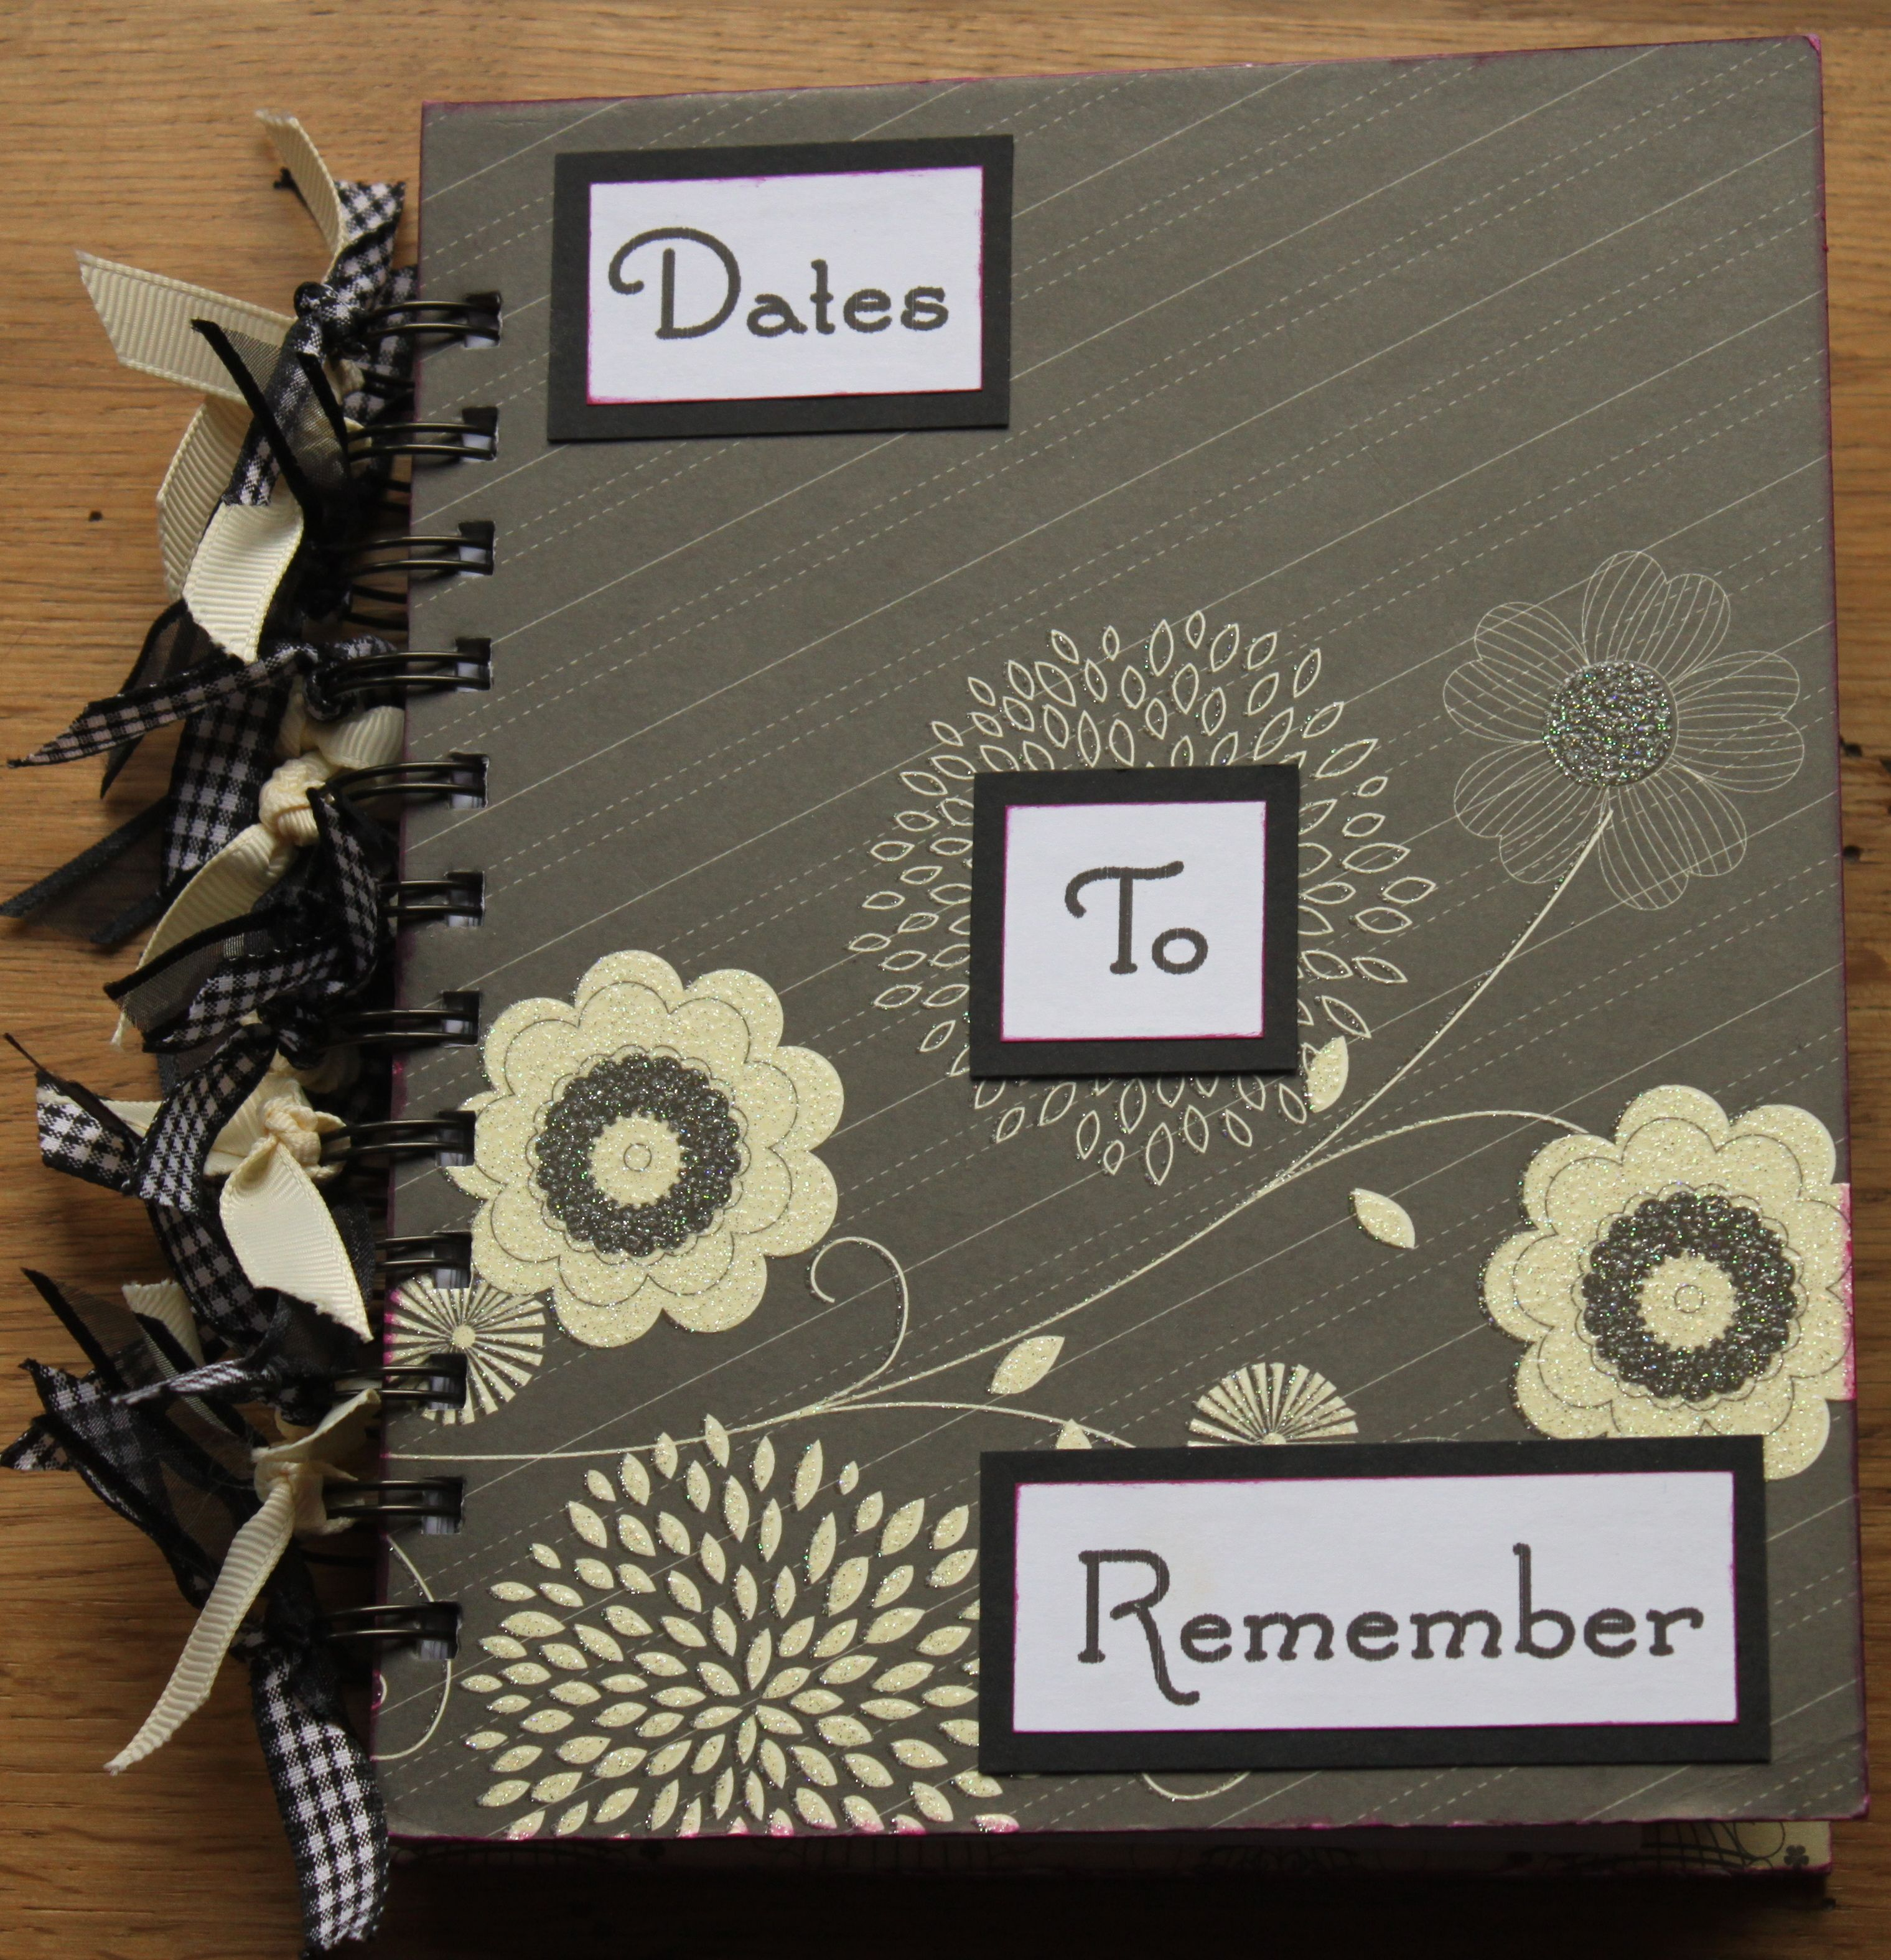 Dates To Remember book